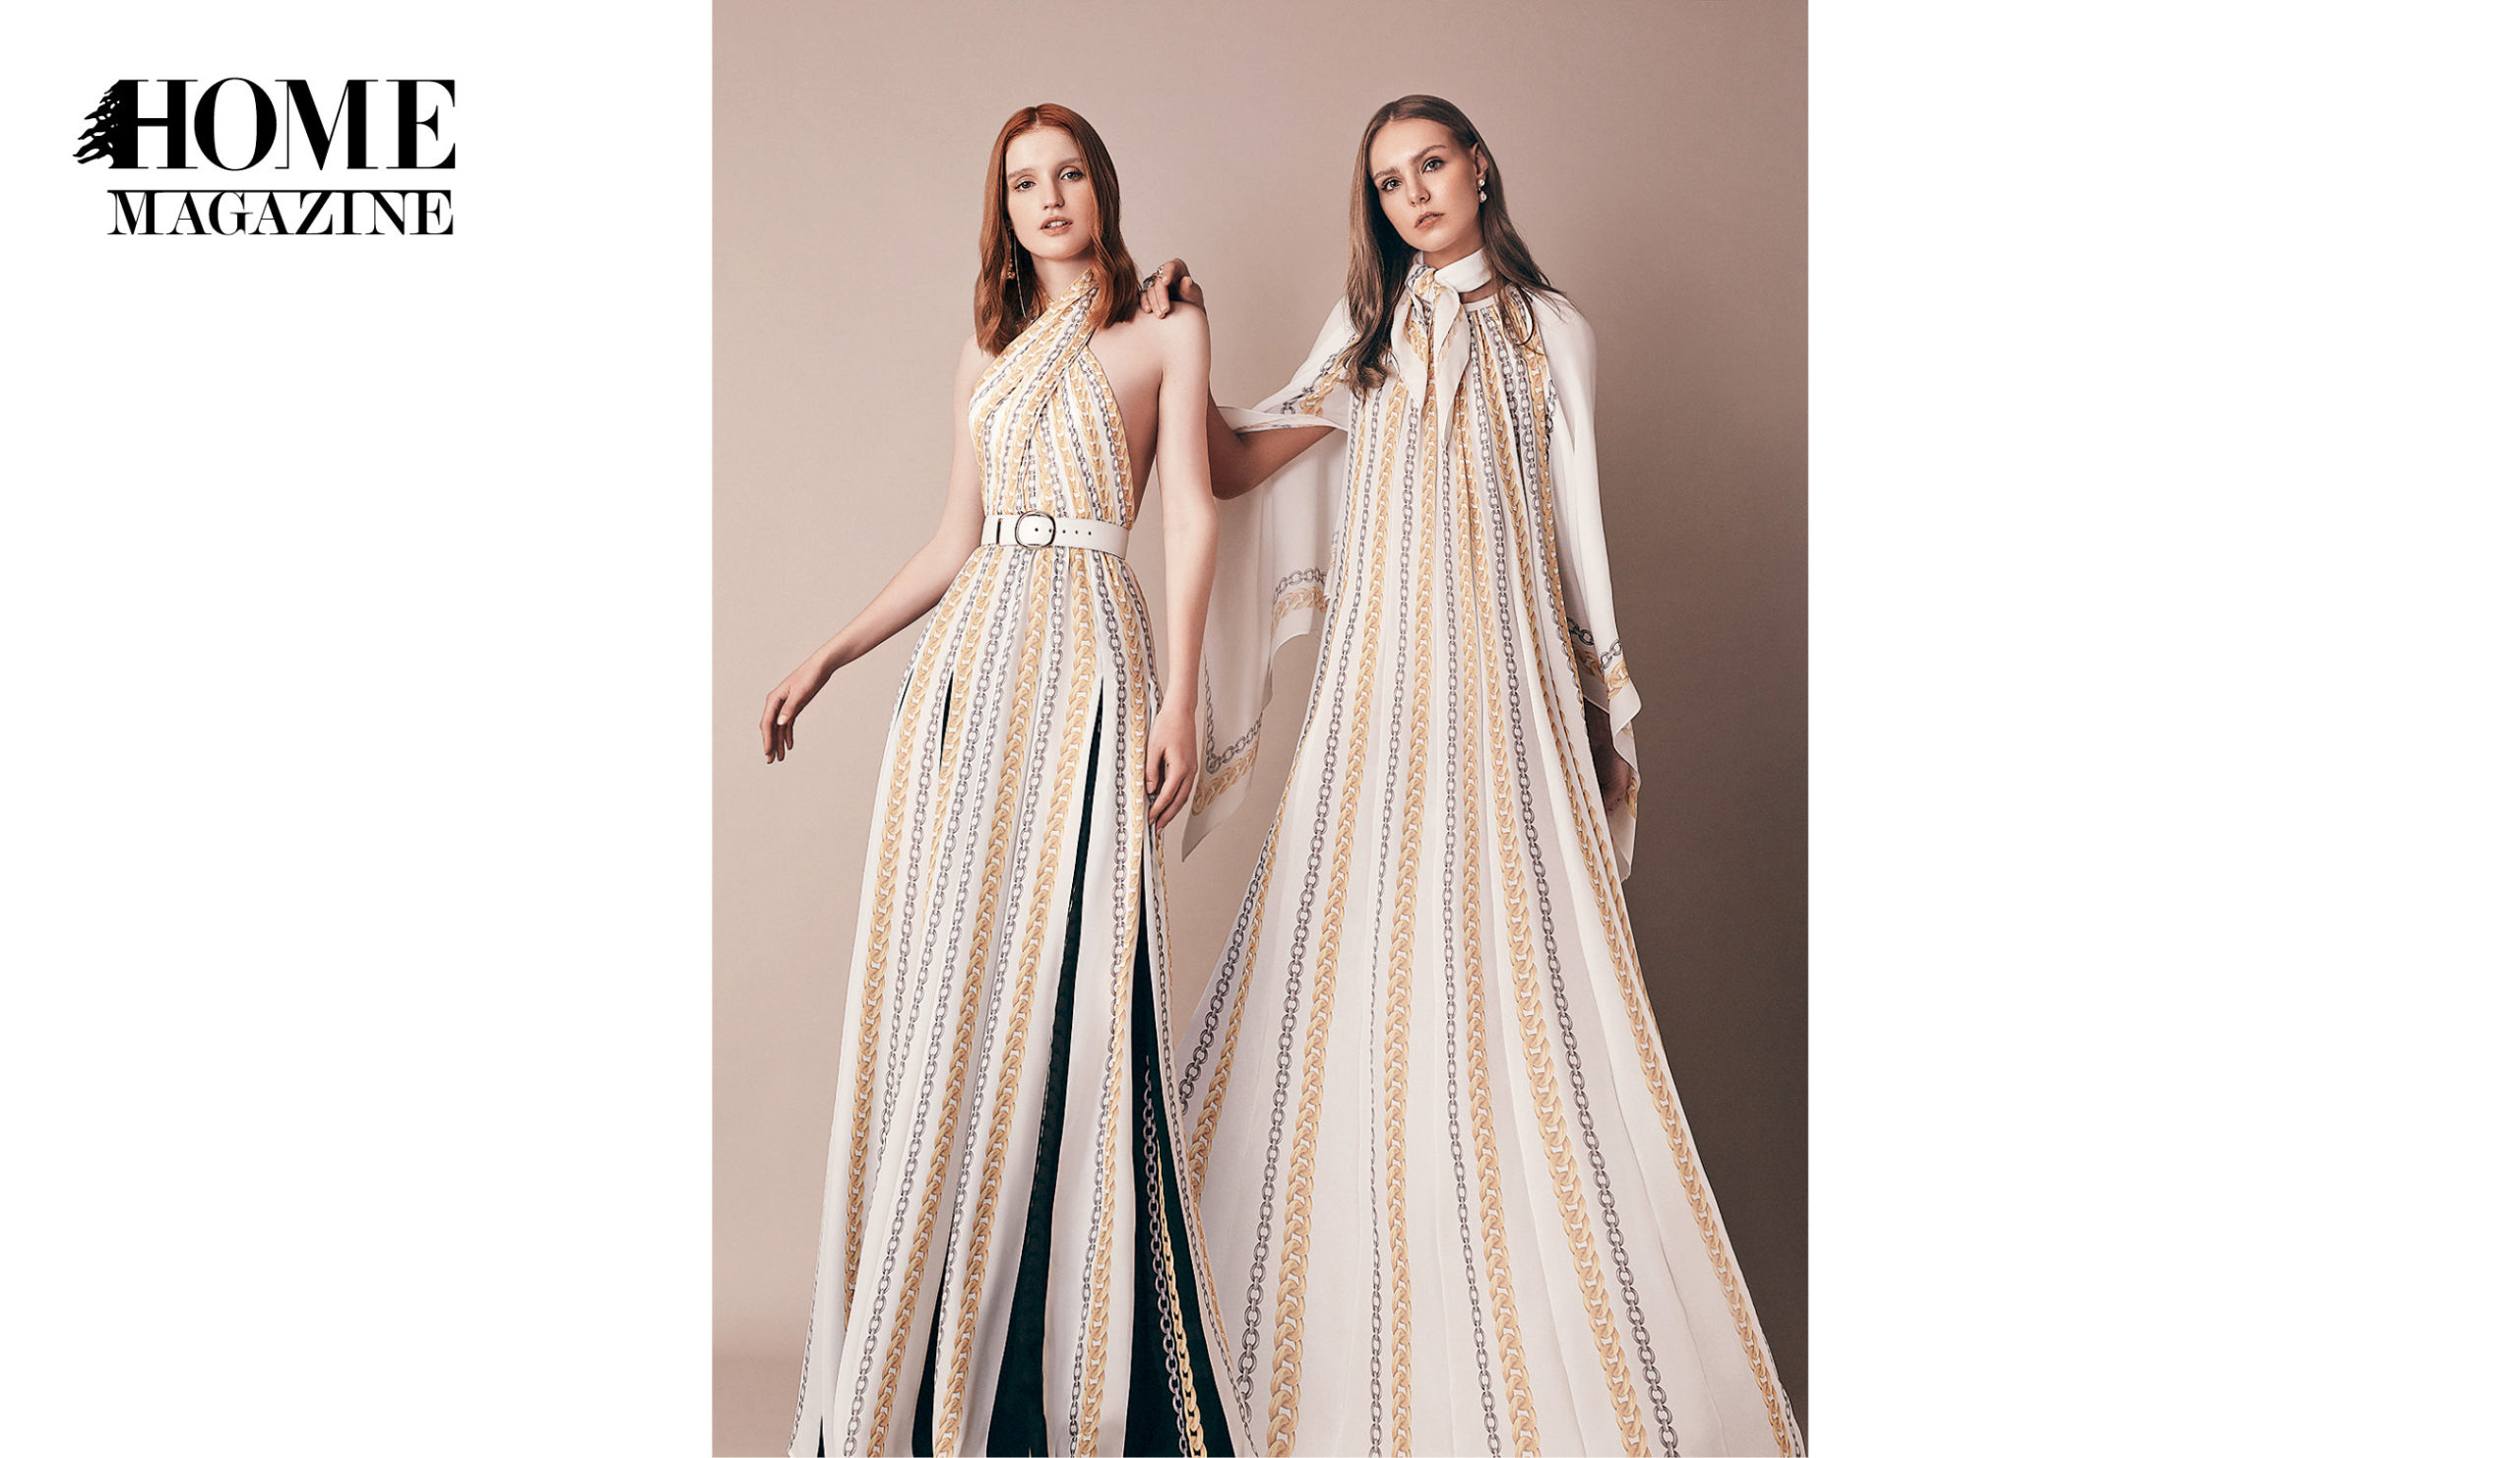 Two models wearing white striped dresses